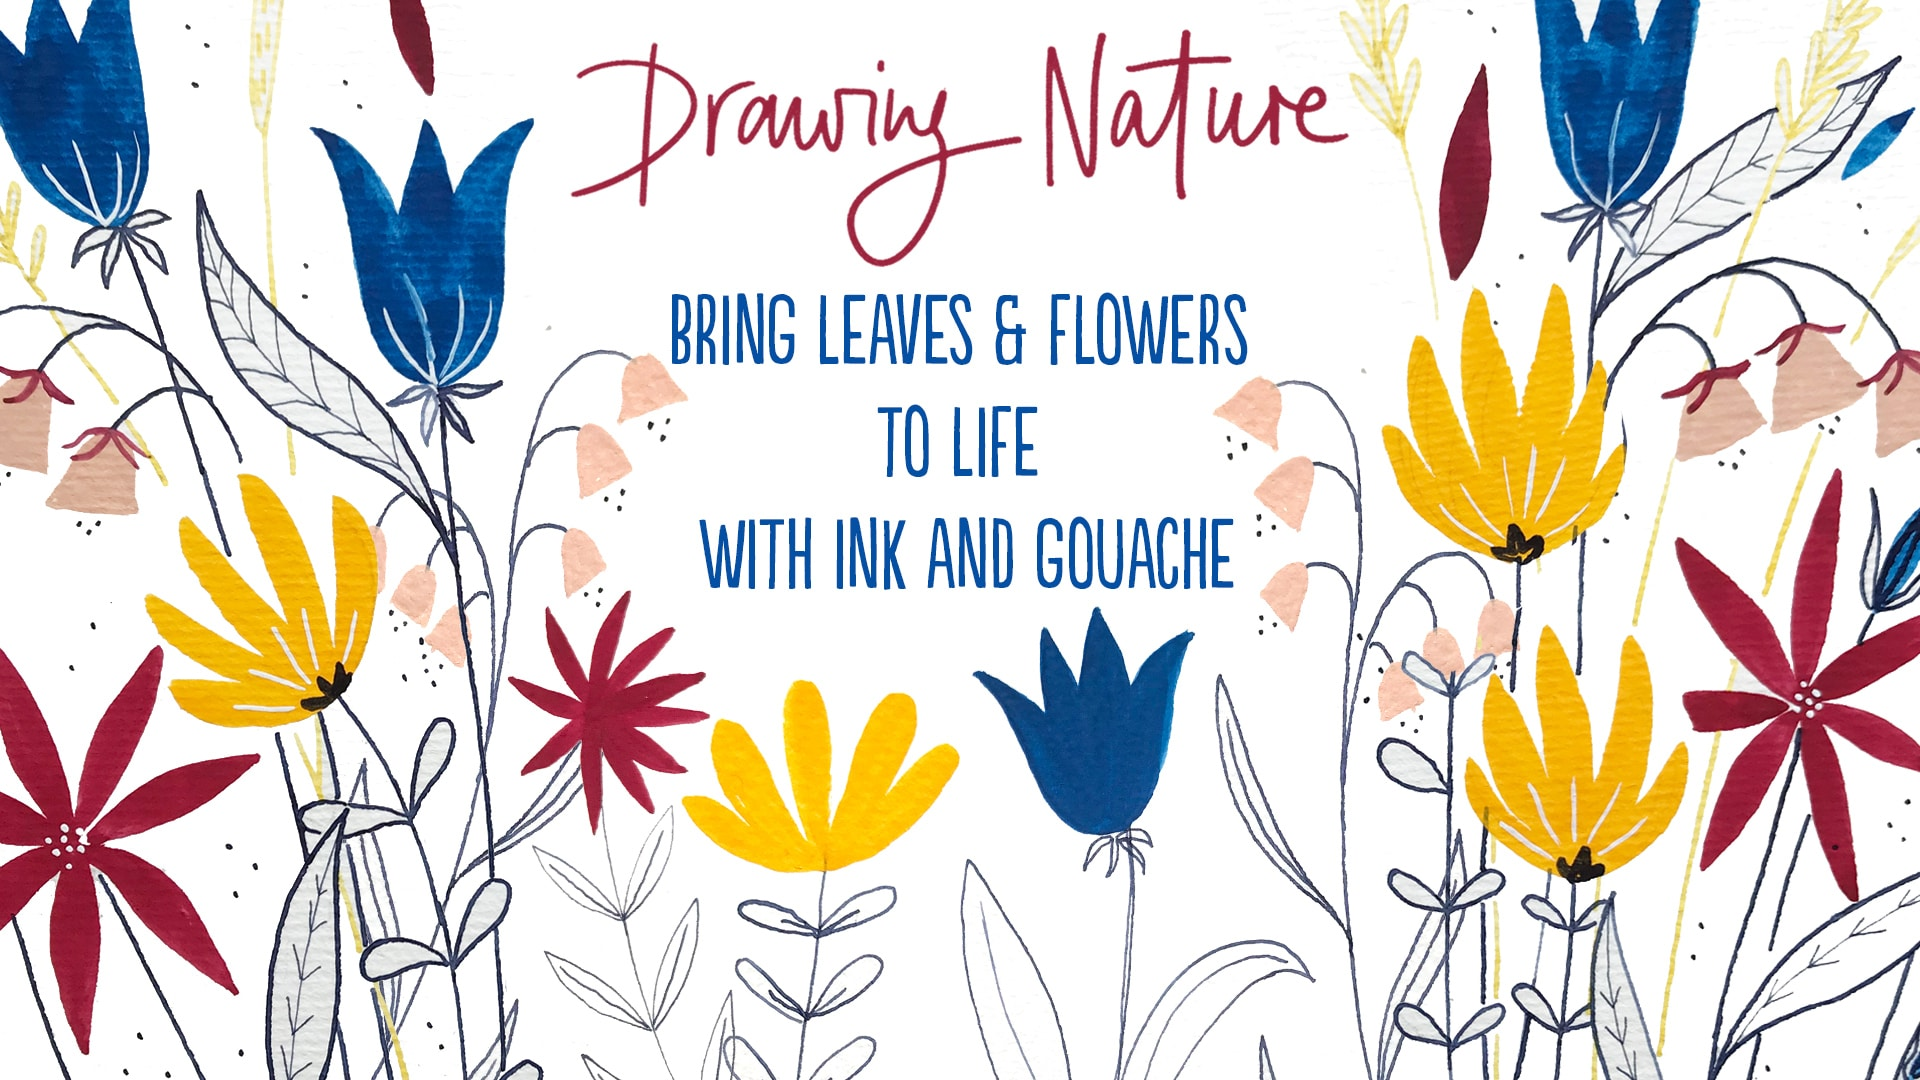 New class about drawing nature bring leaves and flowers to life with ink and gouache